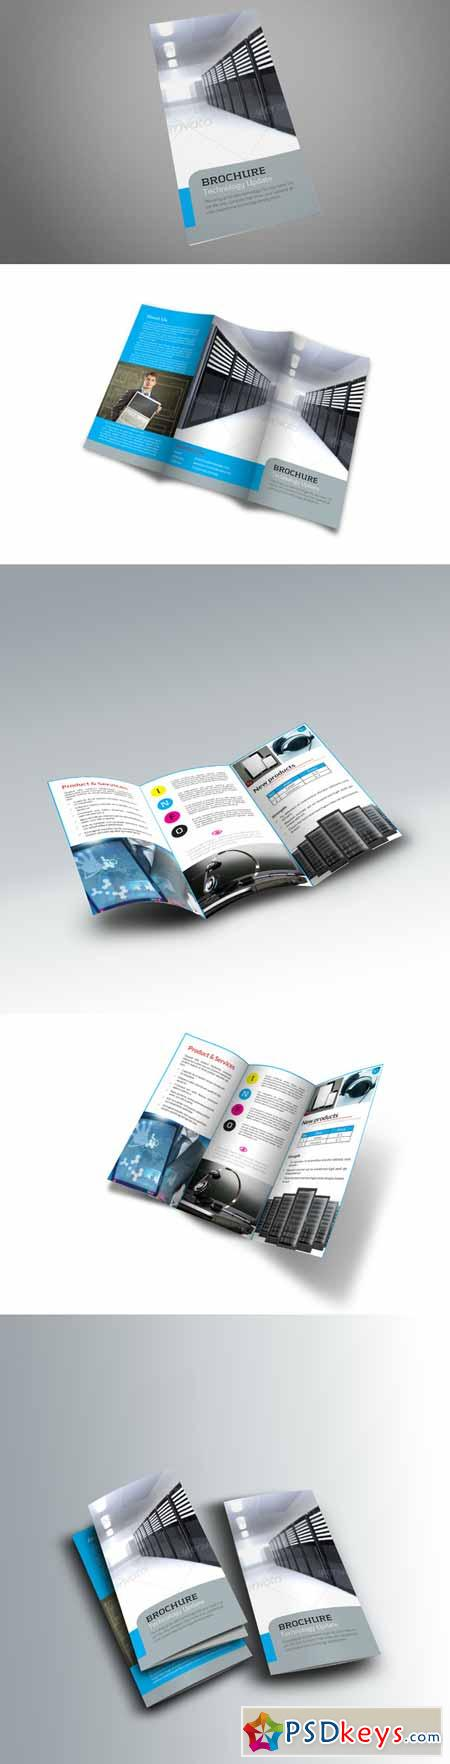 Indesign » page 293 » Free Download Photoshop Vector Stock image ...